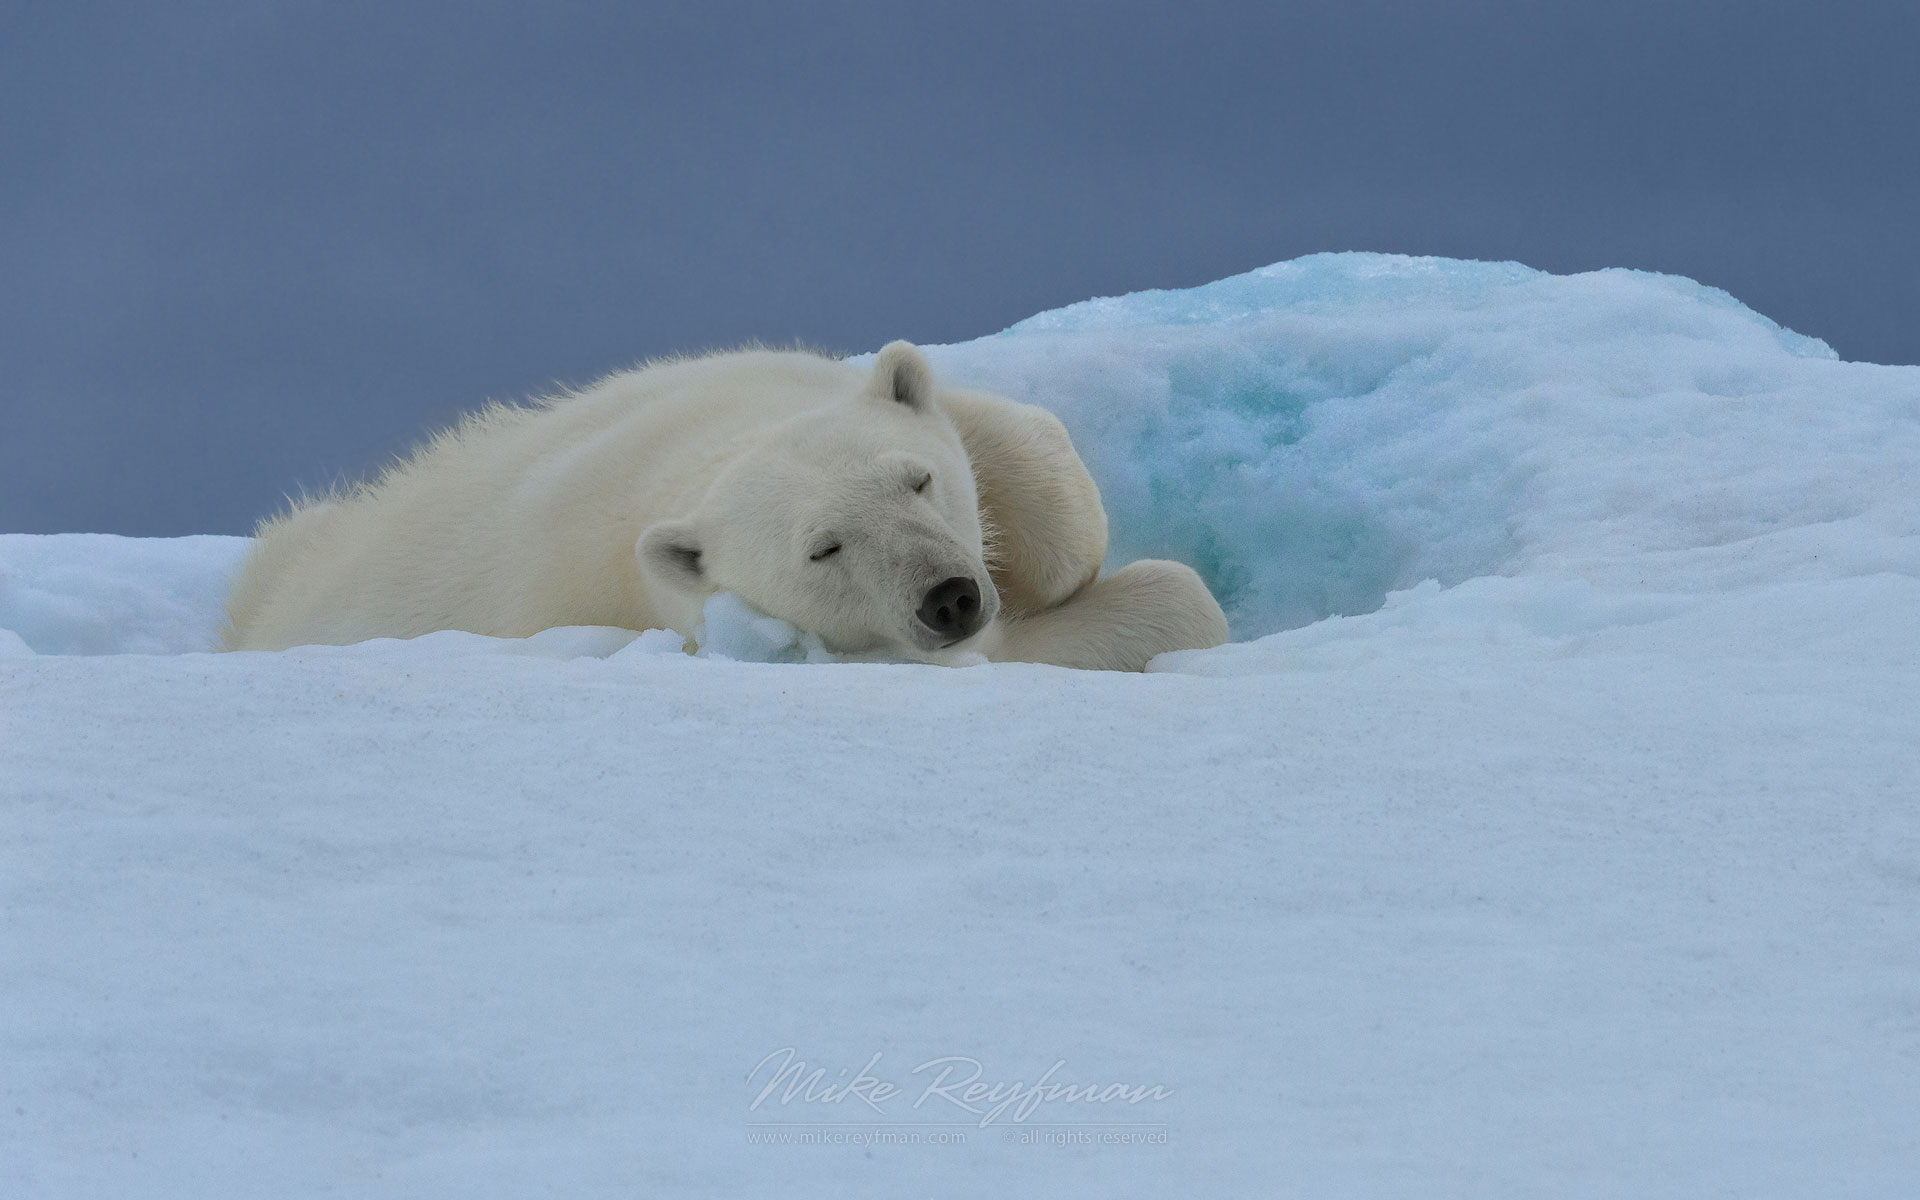 Polar bear sleeping on the iceberg along Spitsbergen coast. Svalbard, Norway. - Polar-Bears-Svalbard-Spitsbergen-Norway - Mike Reyfman Photography